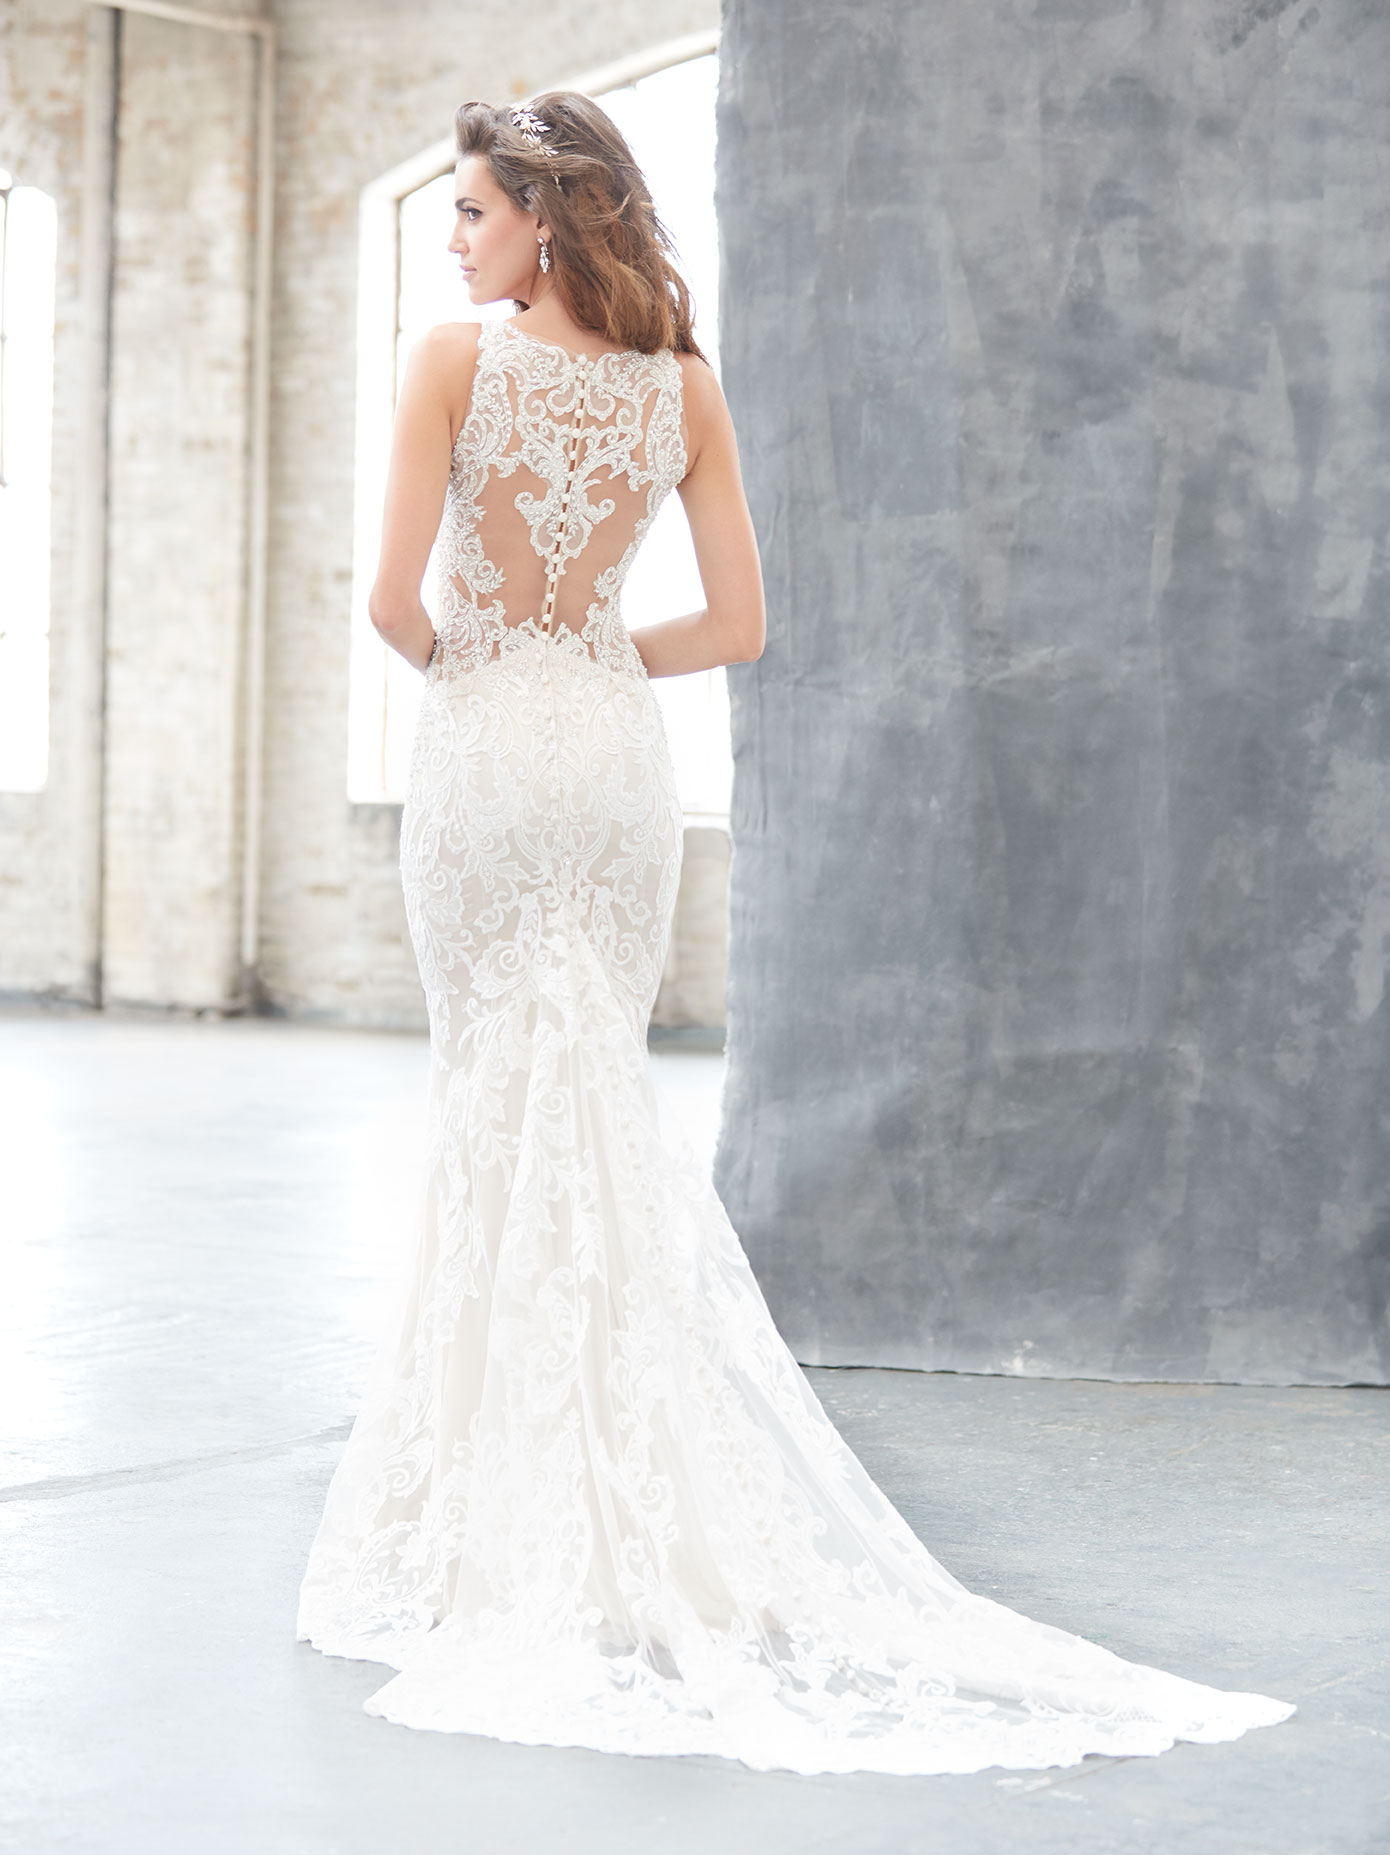 Lace wedding dress featuring a low back, Madison James 2017 Trunk Show coming to Raffaele Ciuca, Melbourne